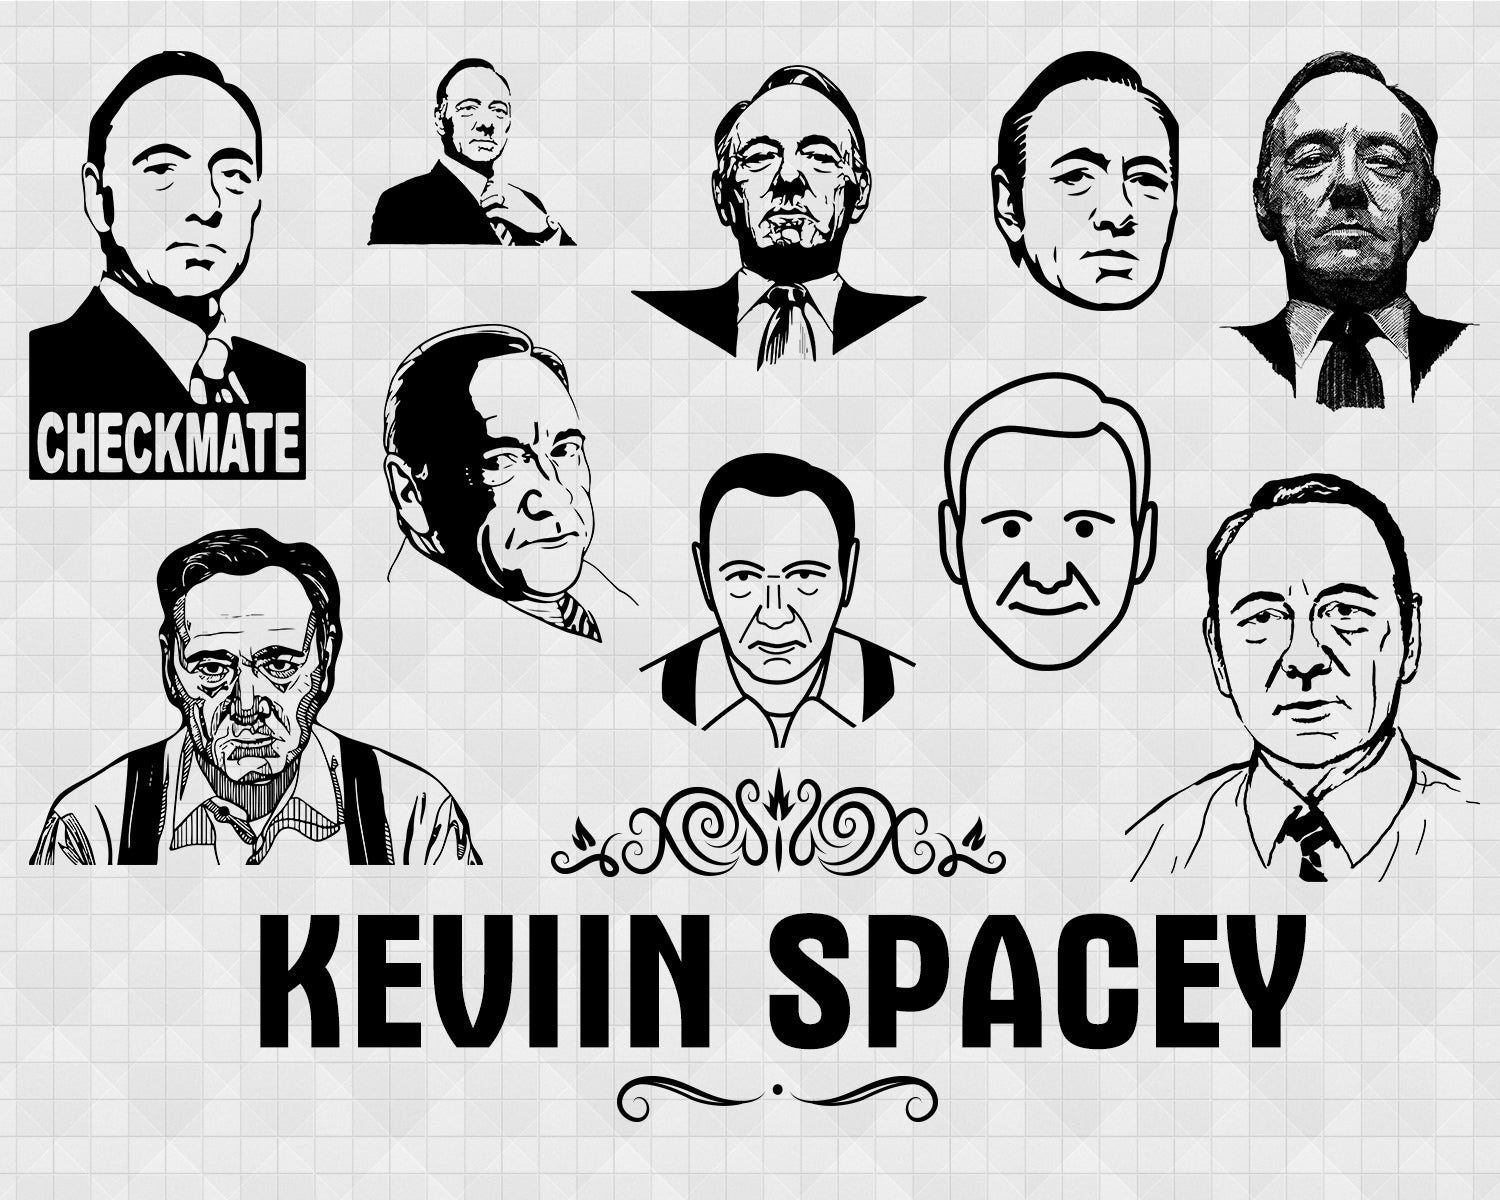 Kevin Spacey svg, famous people, celebrity, celebrity silhouette, arti – Clipartic